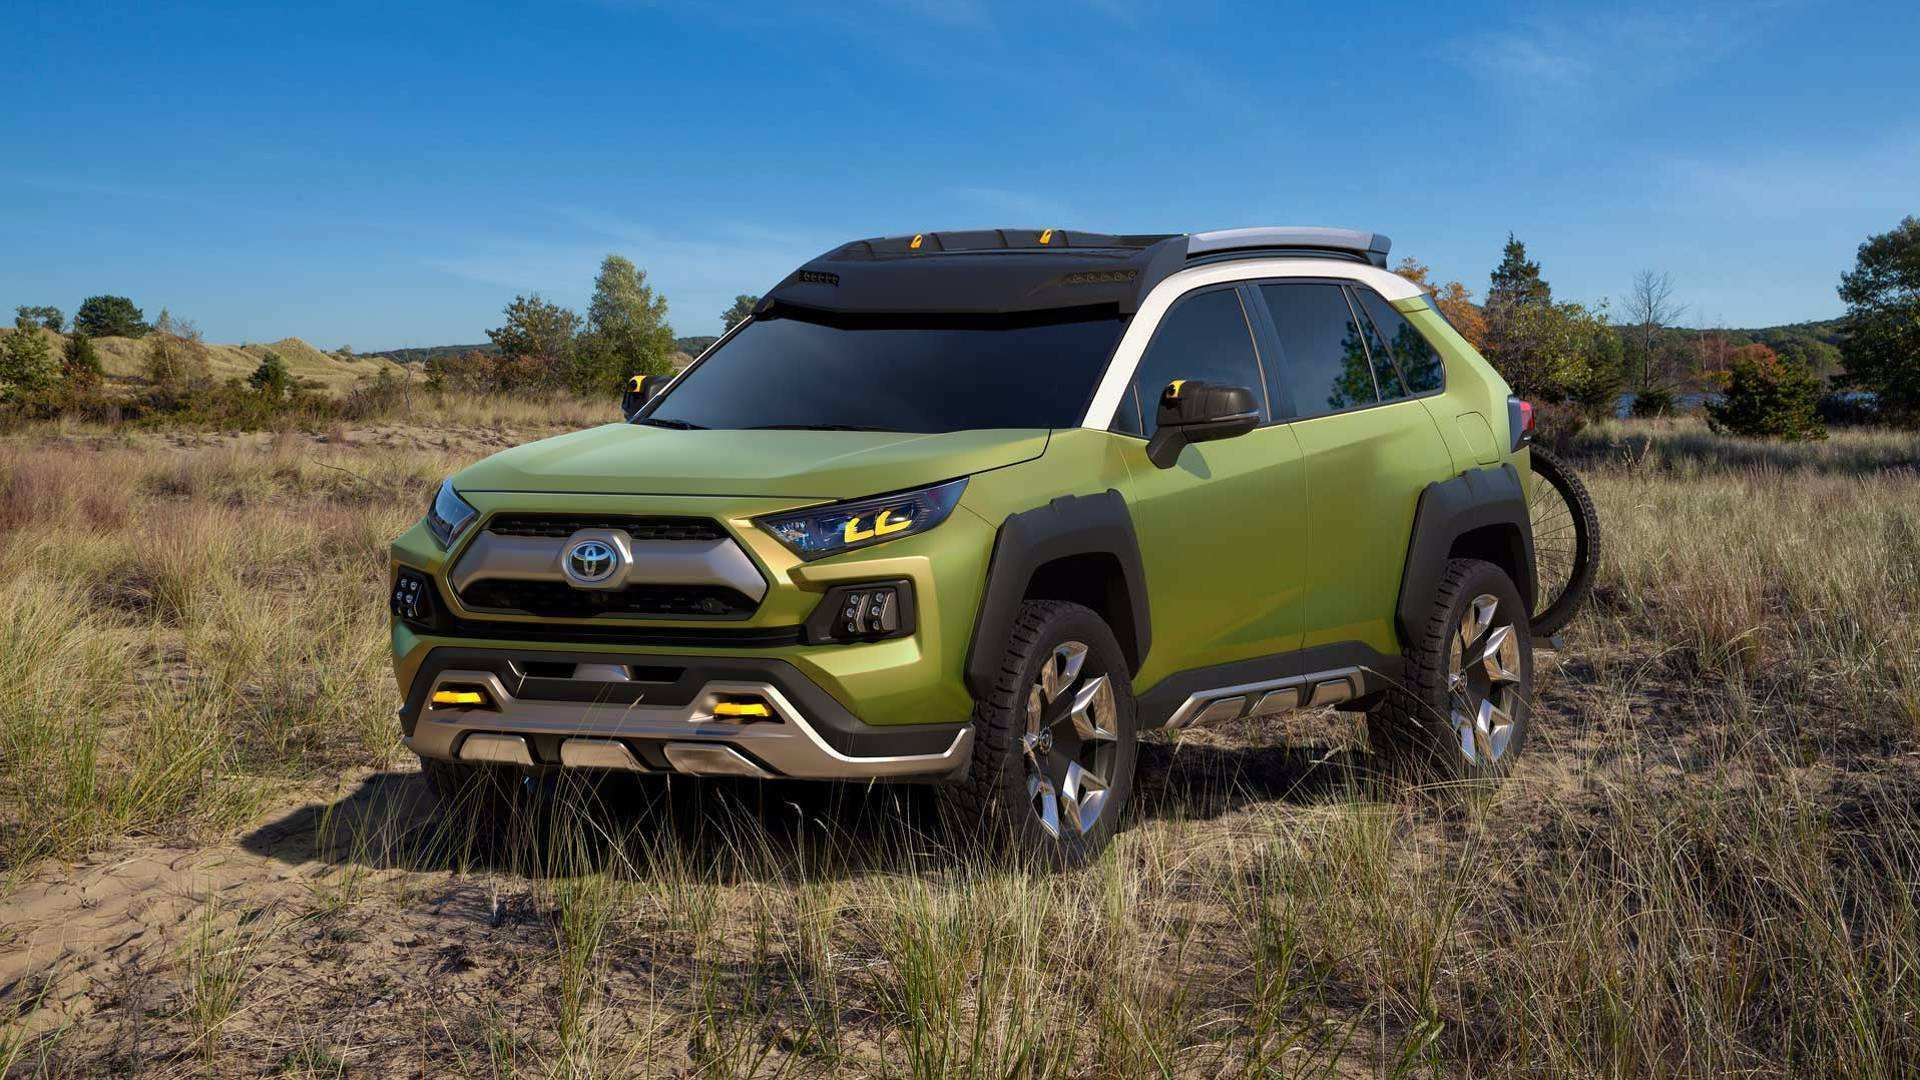 69 Concept of 2020 Toyota Suv Price and Review for 2020 Toyota Suv